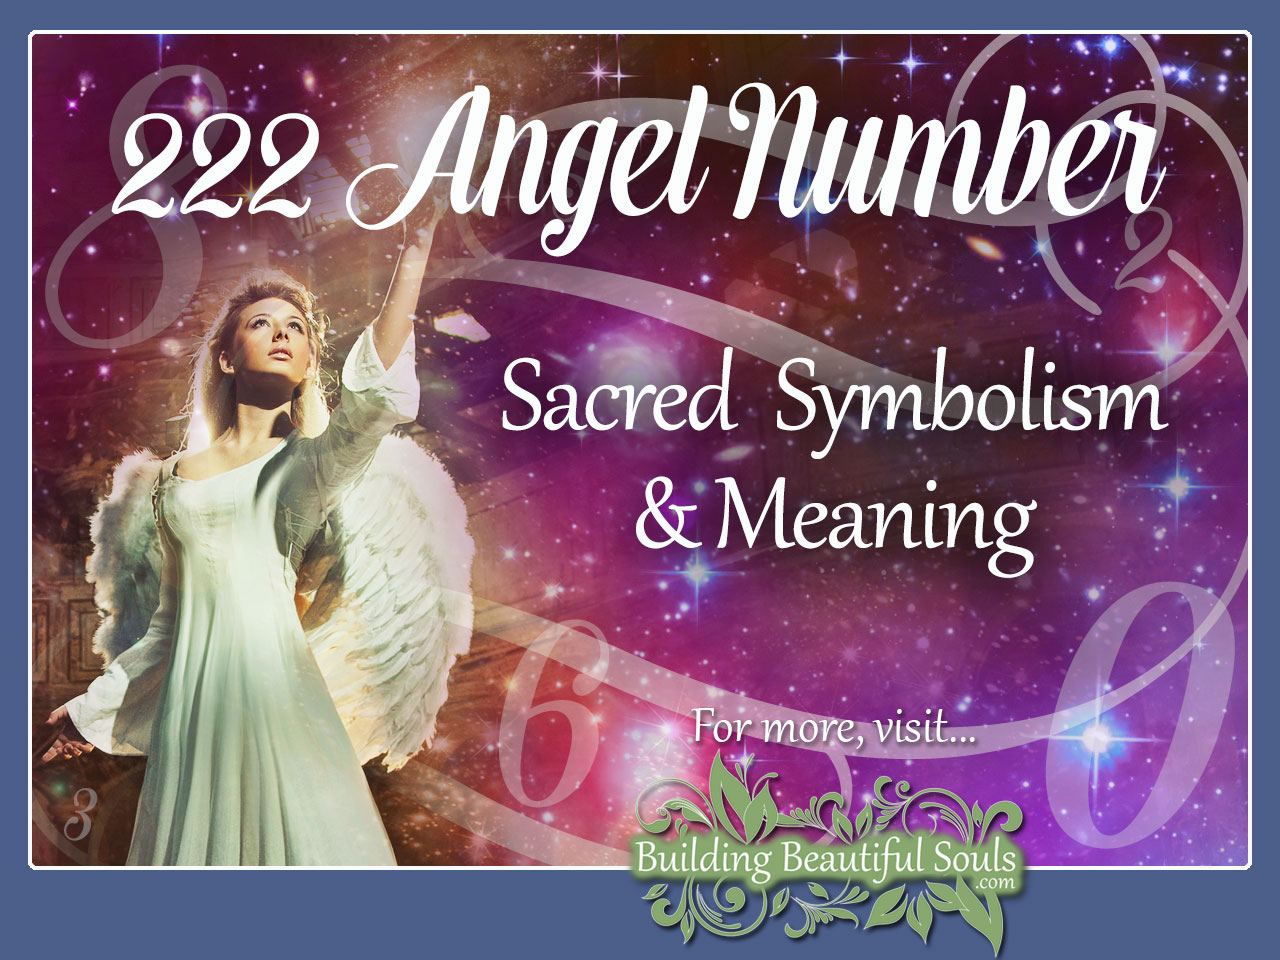 222 Angel Number | What Does 222 Mean in Spiritual, Love, Numerology